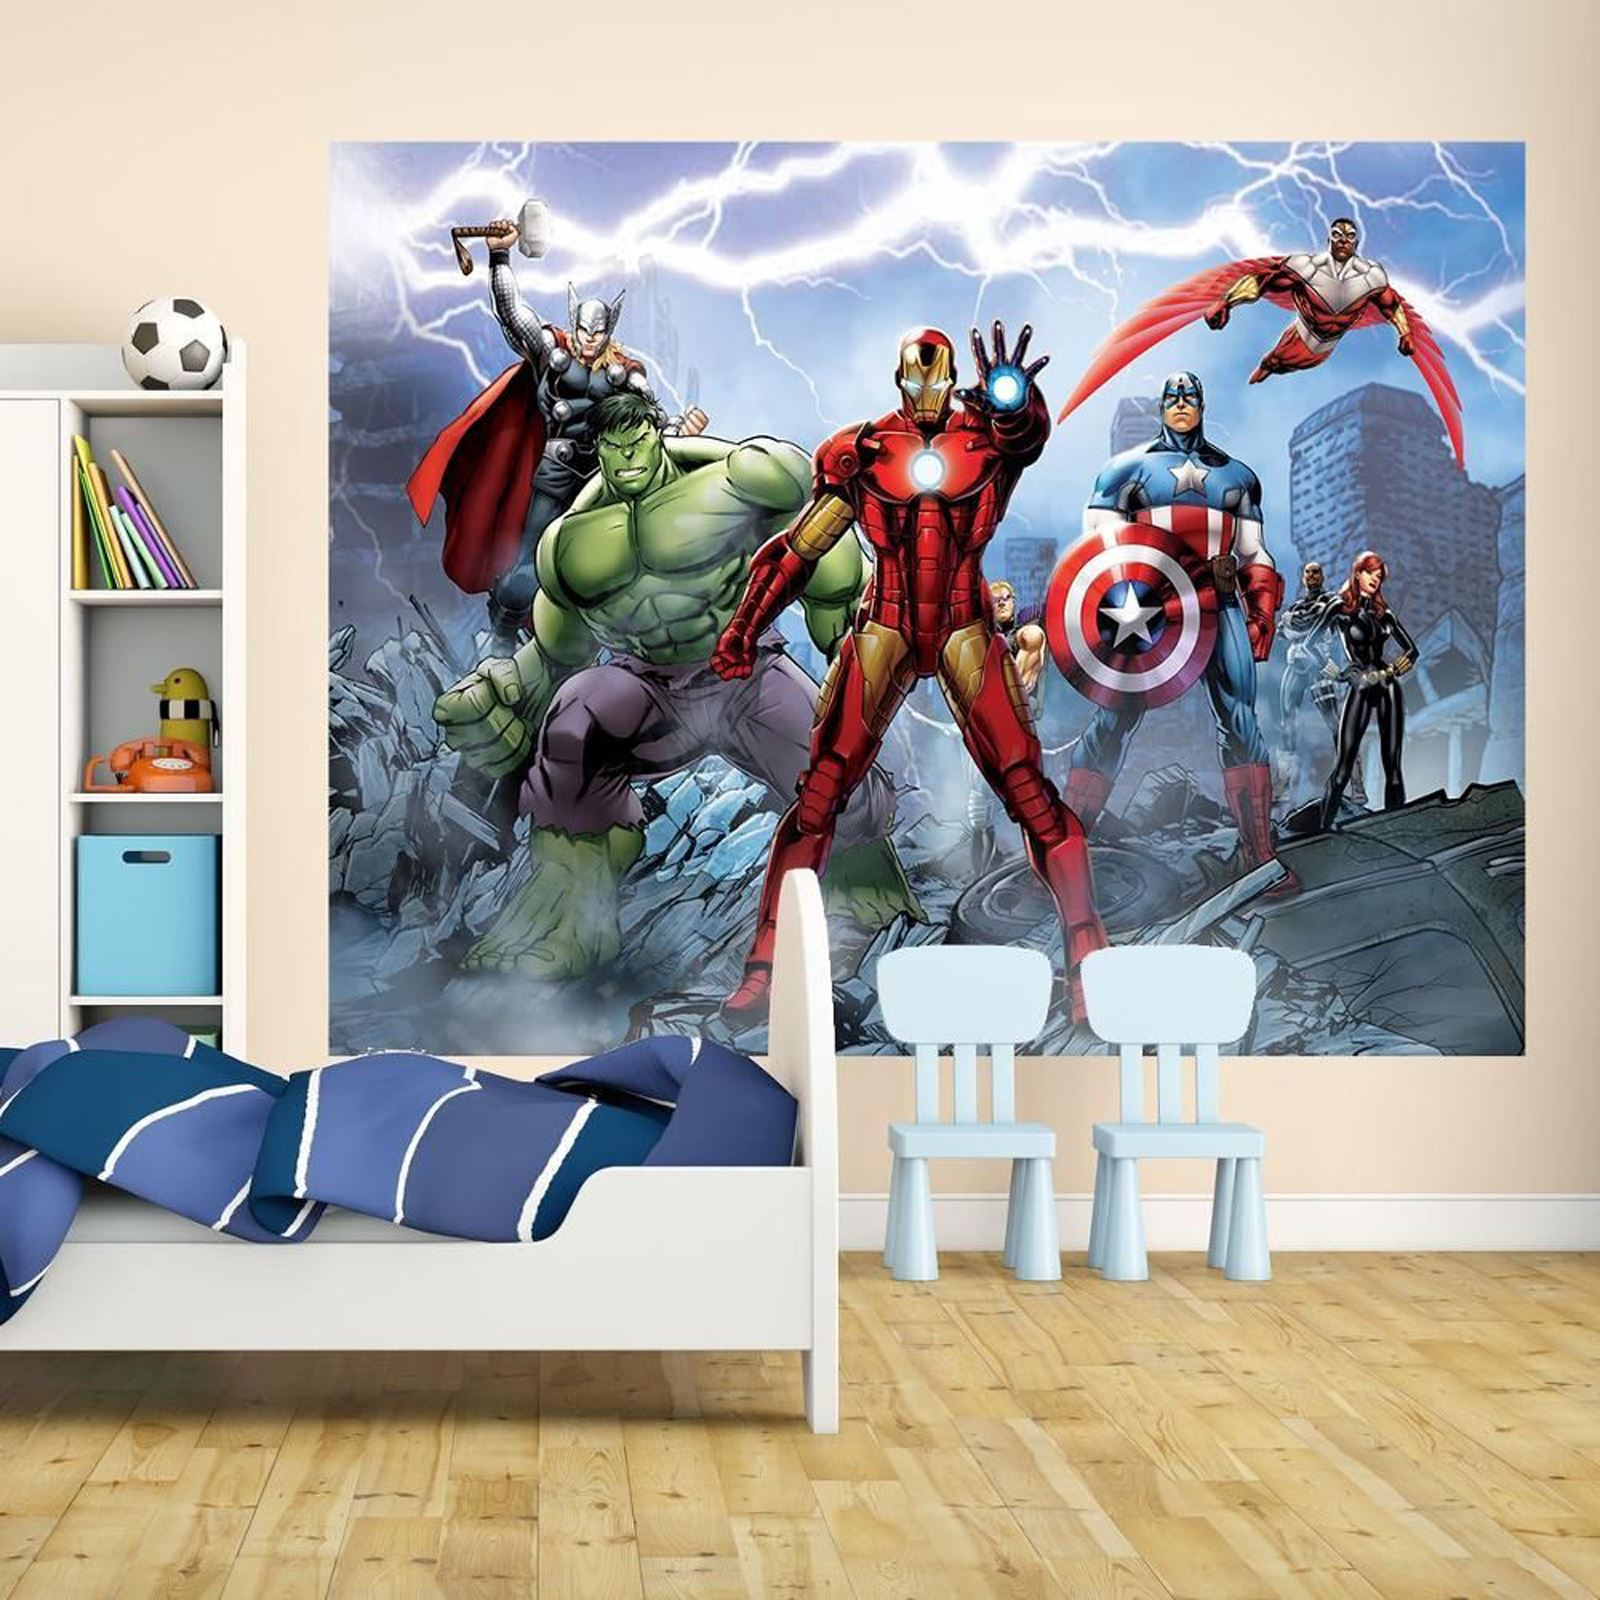 Marvel comics and avengers wallpaper wall murals d cor for Avengers wallpaper mural